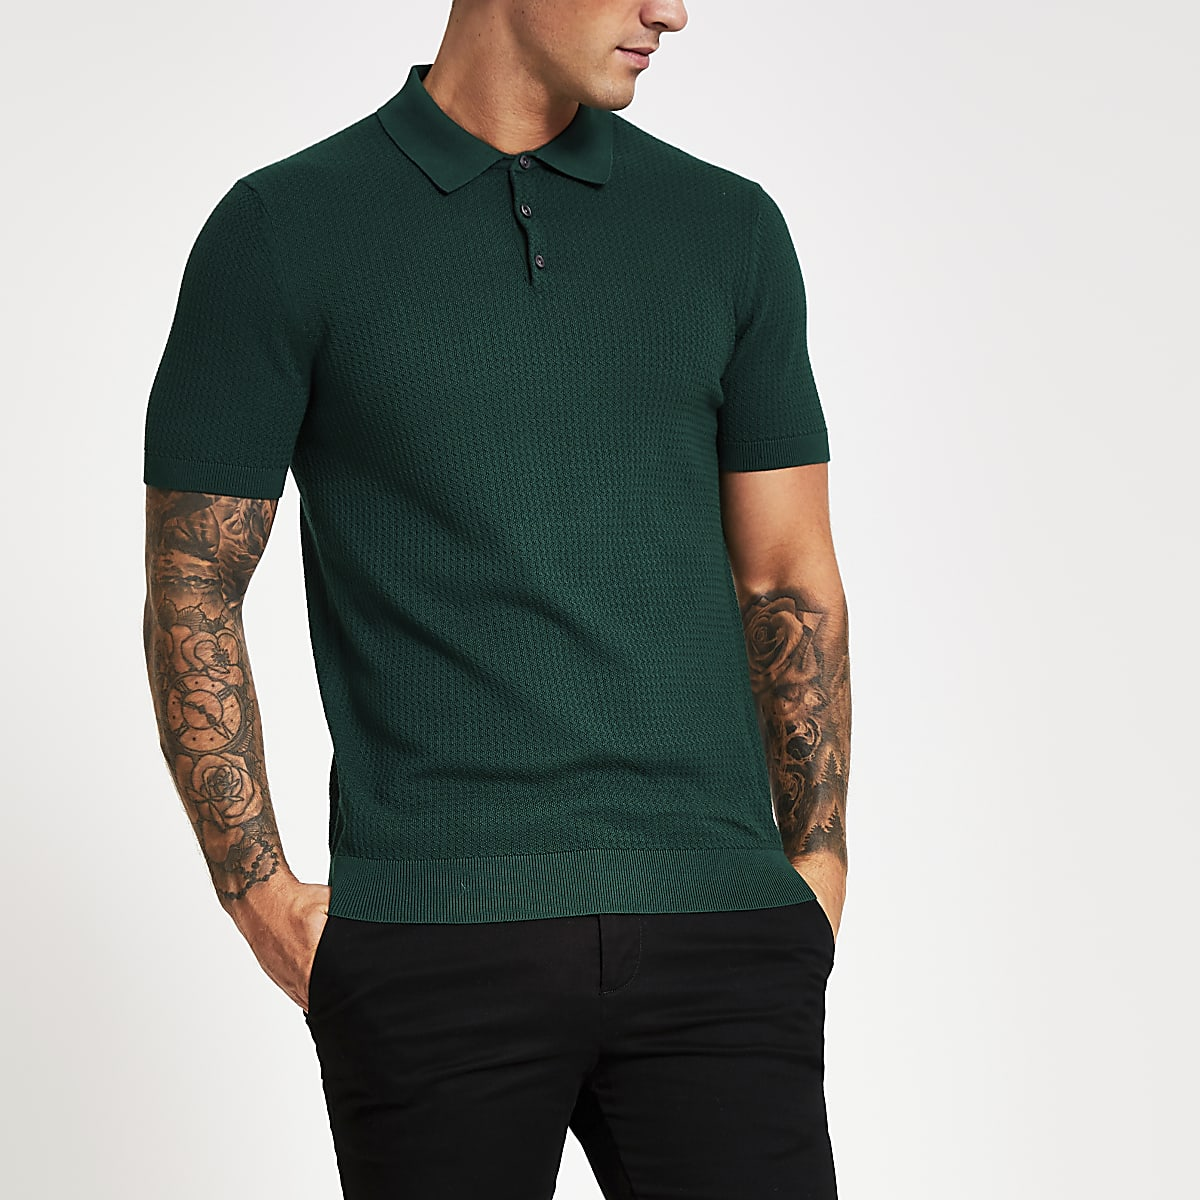 Selected Homme green short sleeve polo shirt